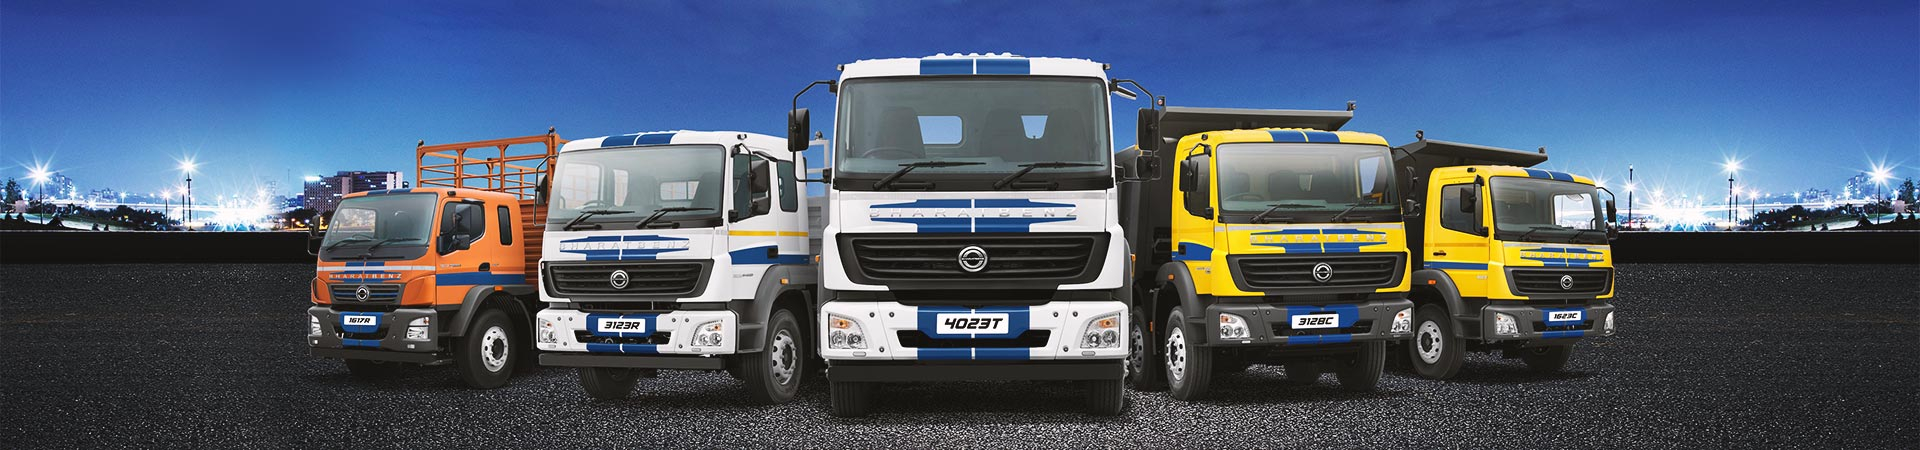 Trucks- Truck Price, Heavy Duty Haulage, Tipper, Tractor